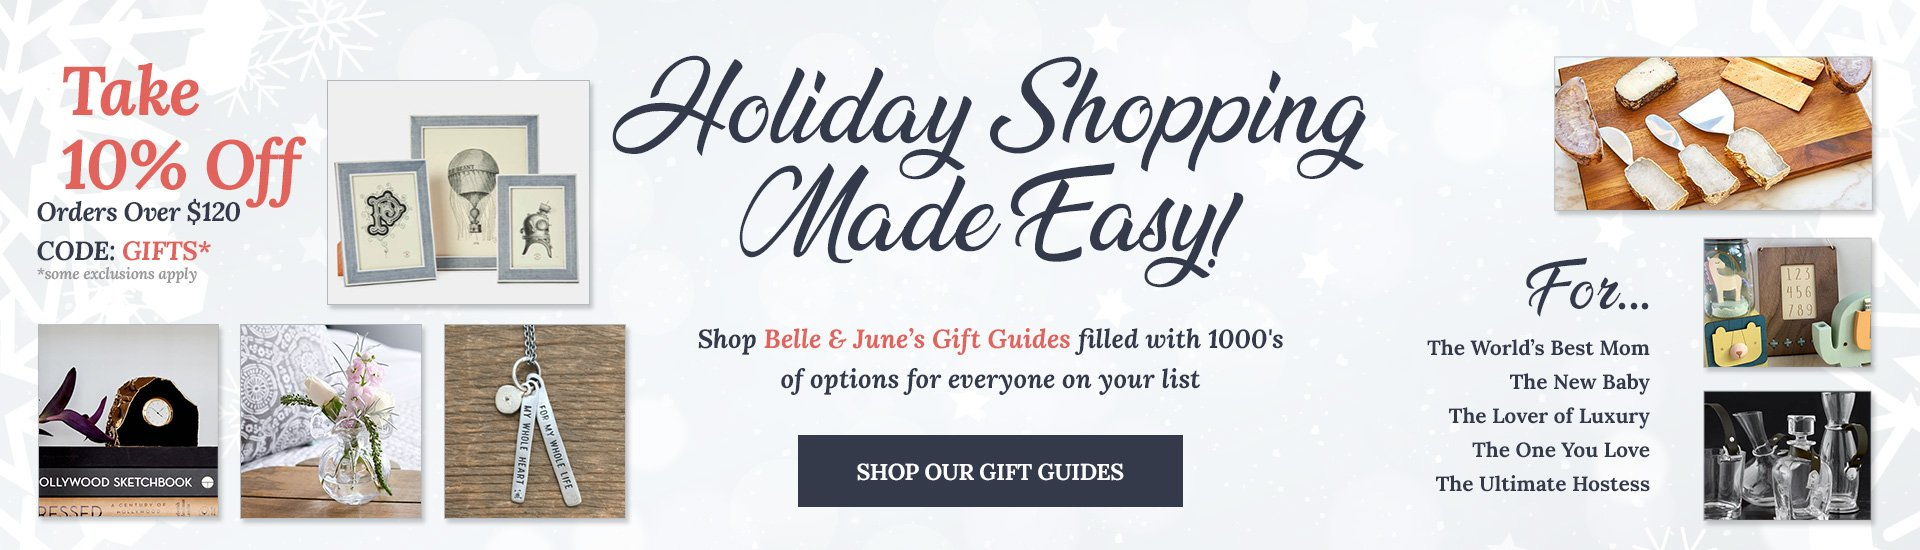 Shop Gift Guides and Take 10% Off